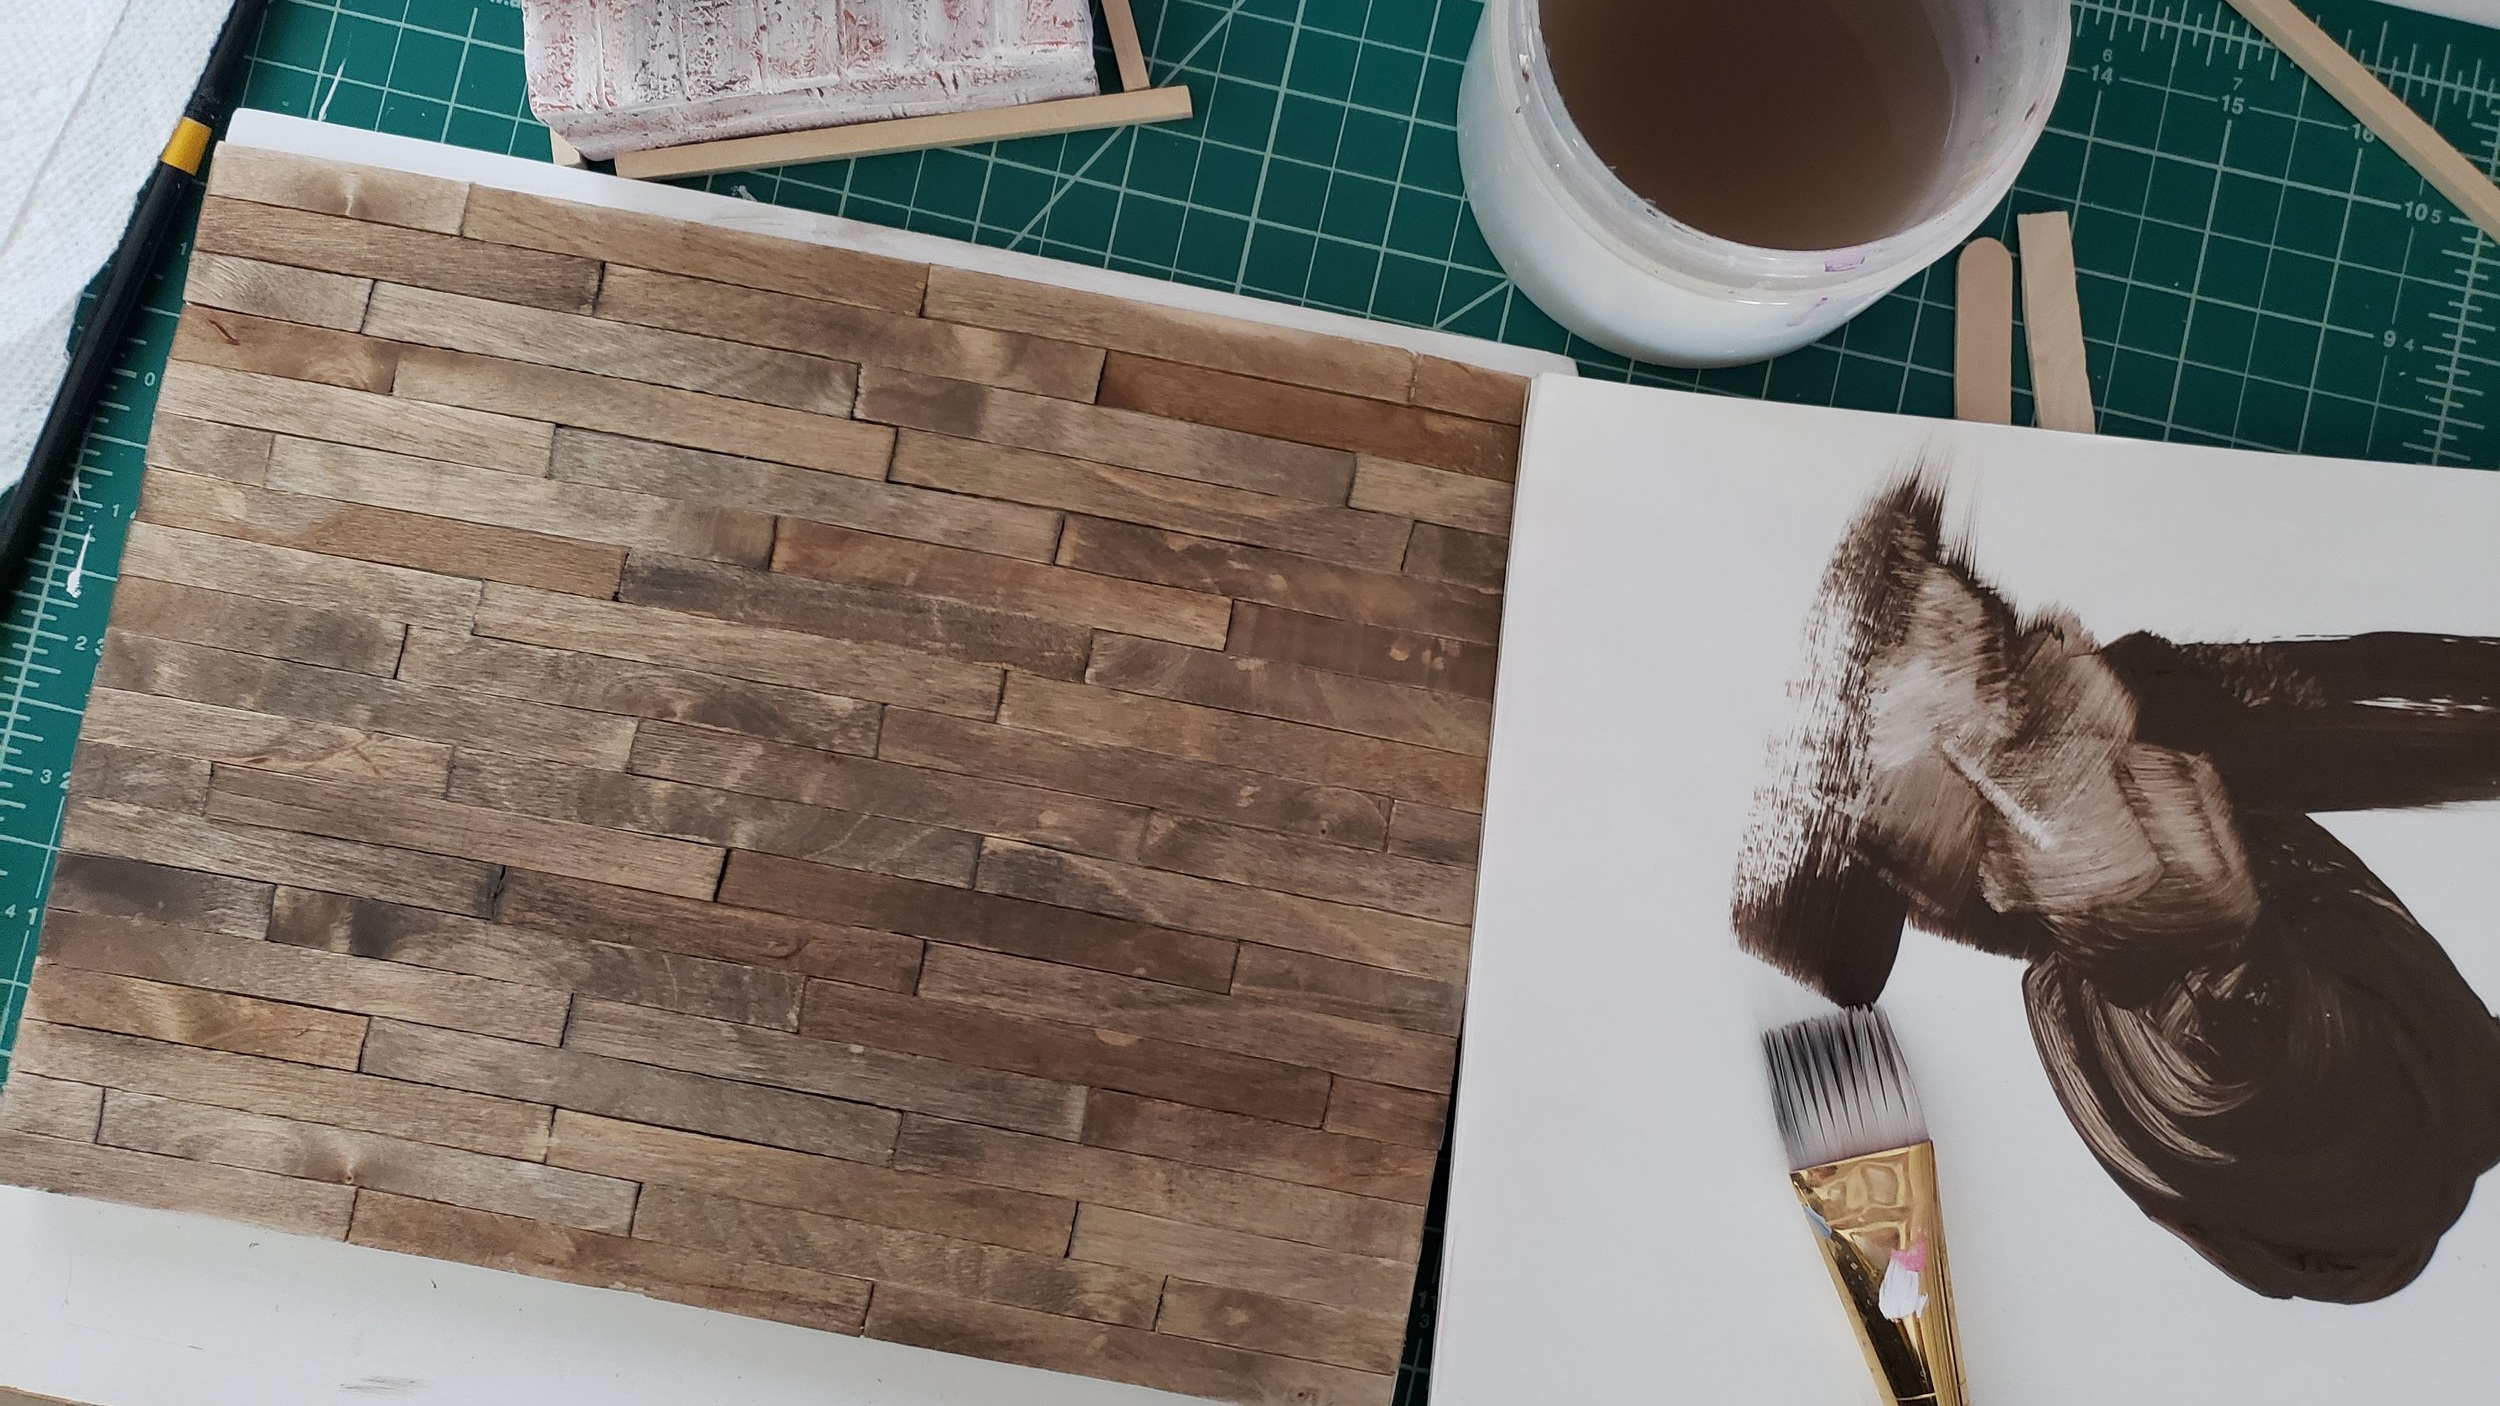 In Progress Pic - Wood stain using acrylic paint mixed with water